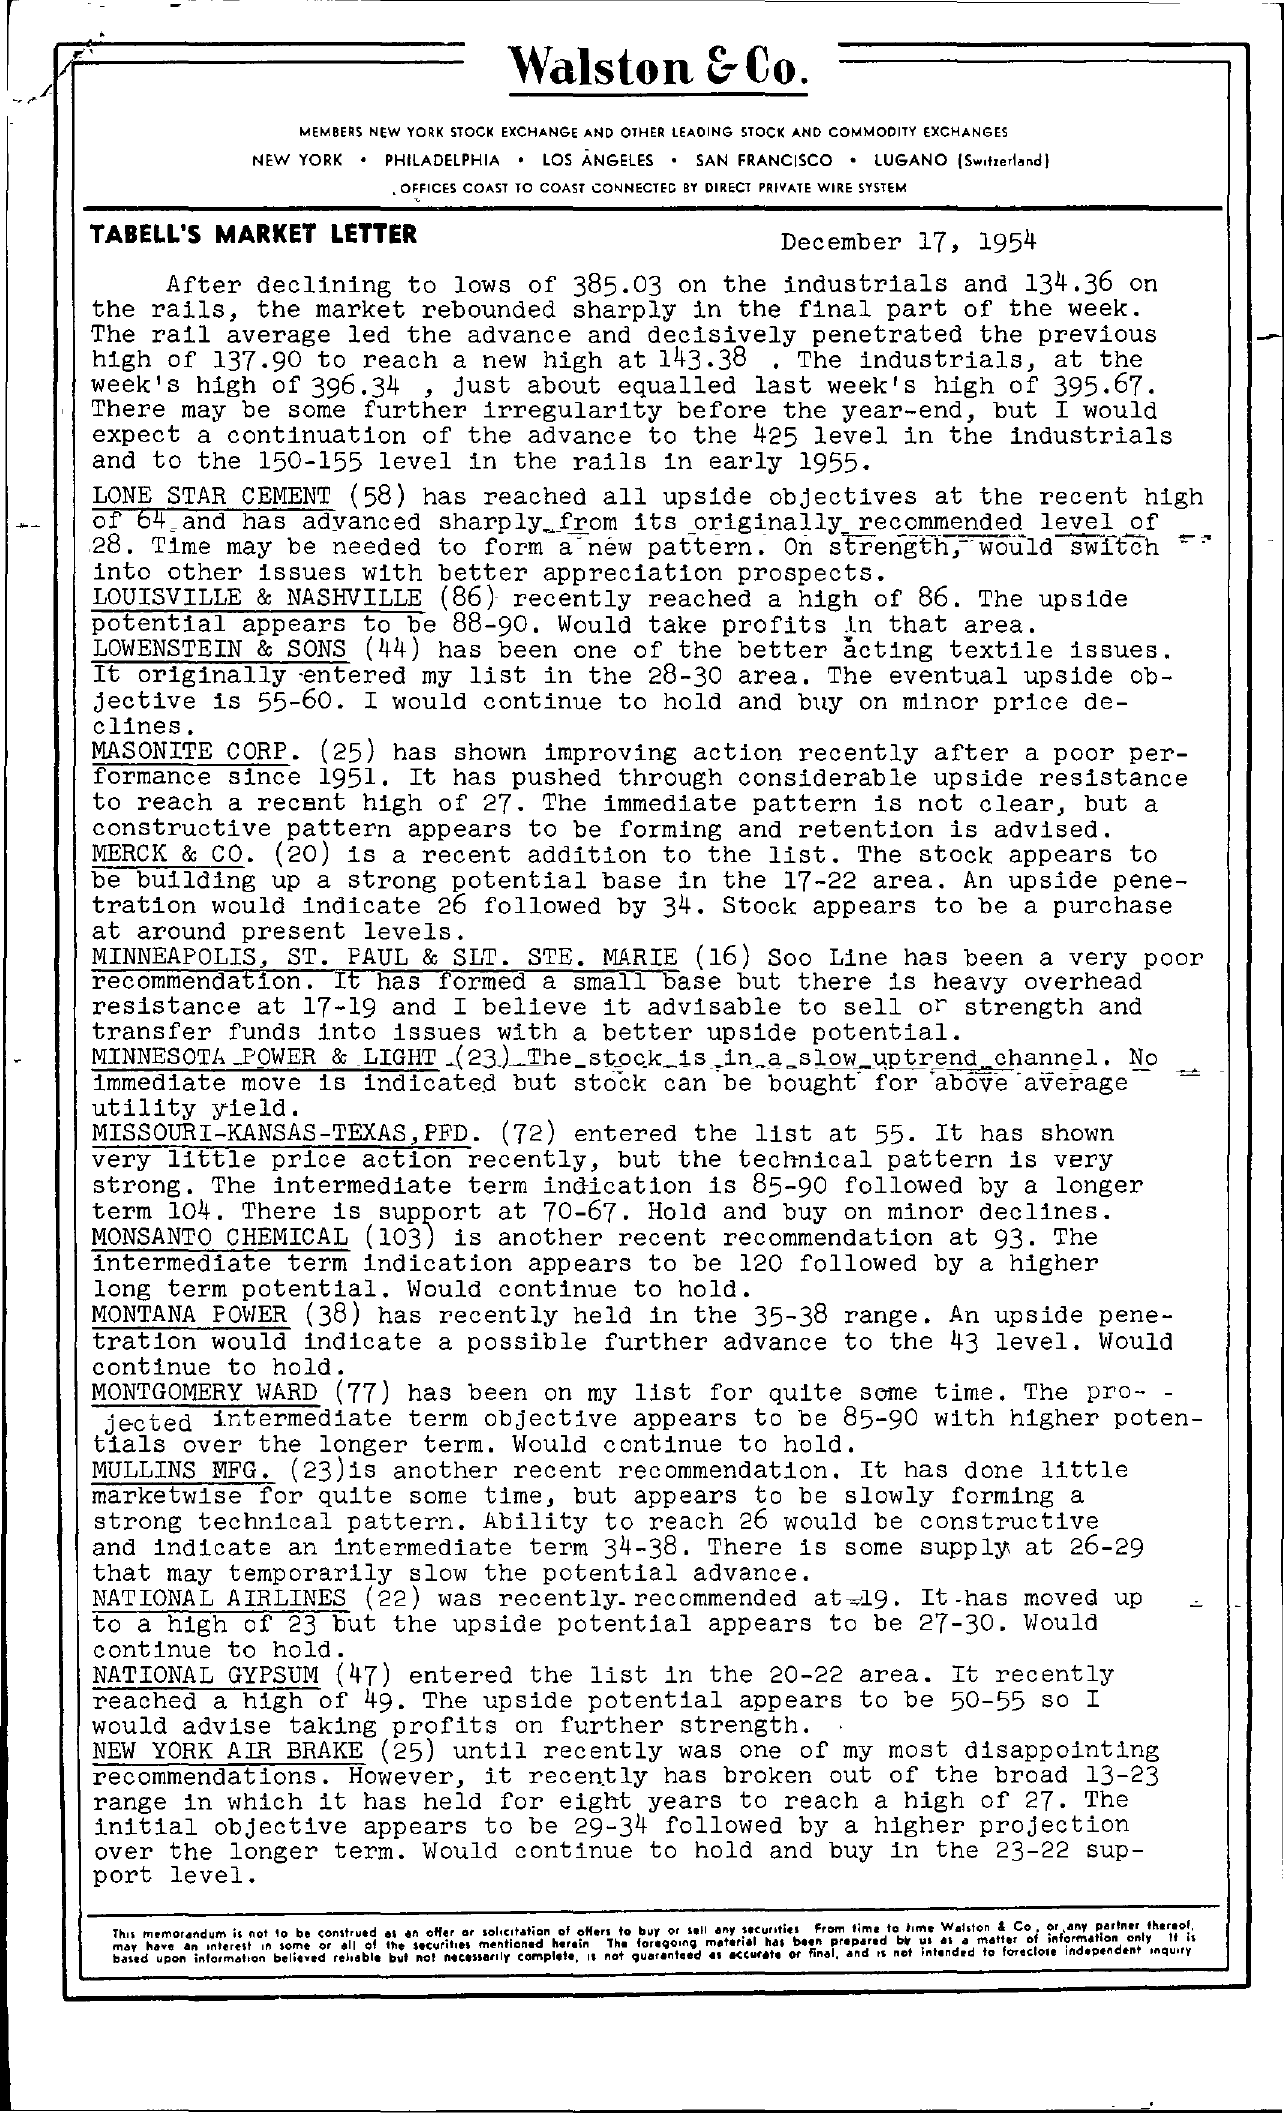 Tabell's Market Letter - December 17, 1954 page 1